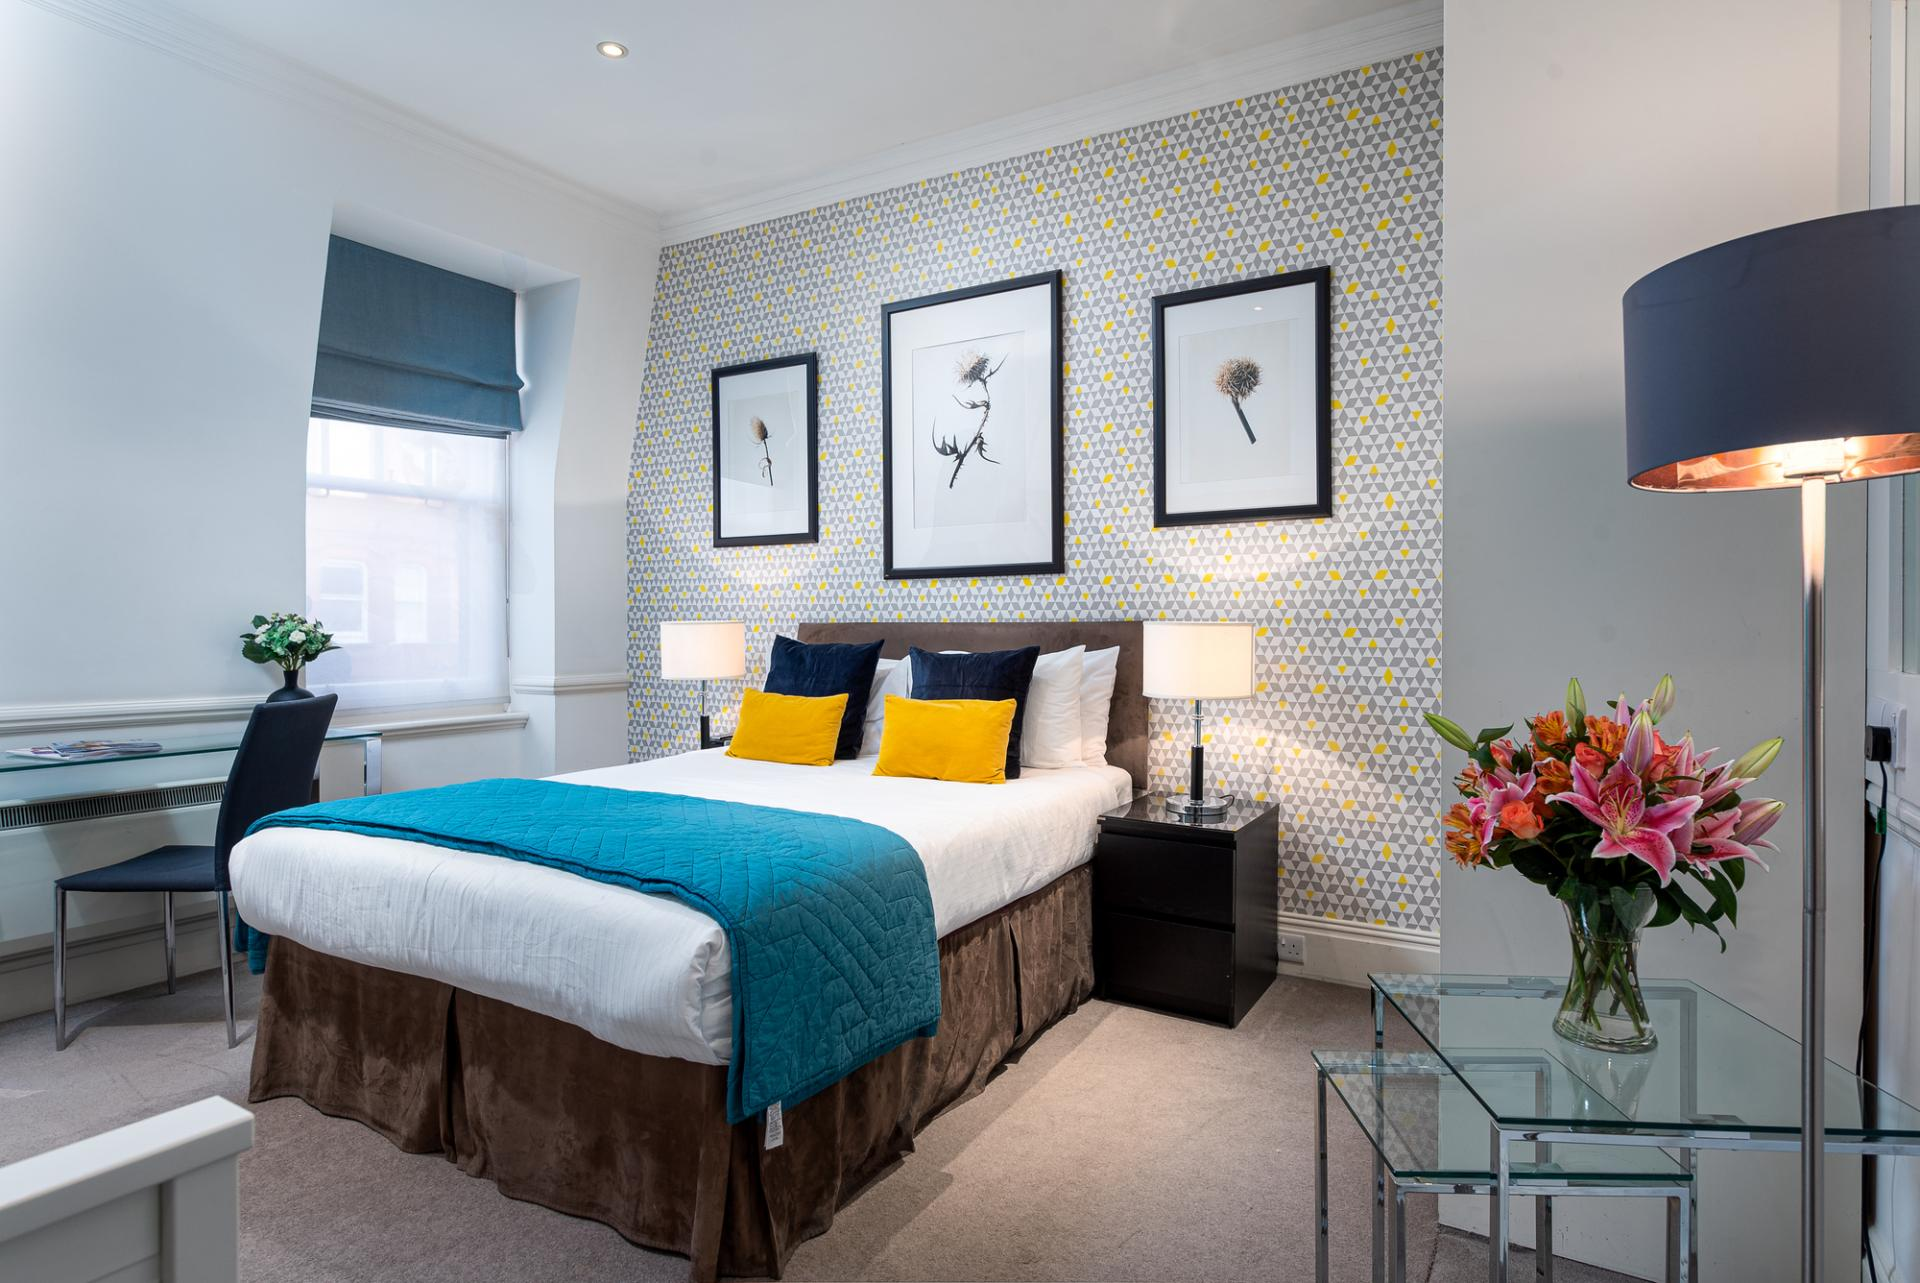 Bed at Draycott Place Serviced Apartments, Chelsea, London